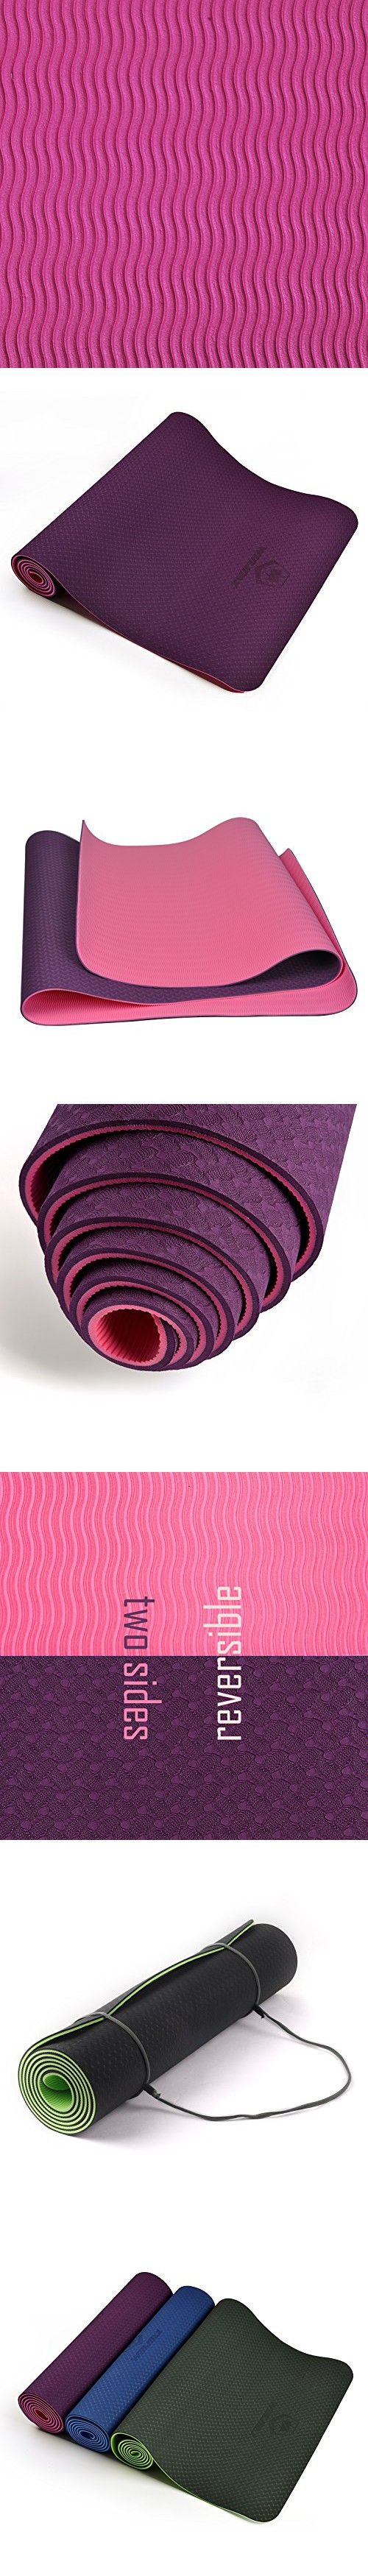 WinMax Anti-slip Eco-Friendly 6mm 1/4 inch TPE Fitness Yoga Mat with Carrying Strap (Purple)